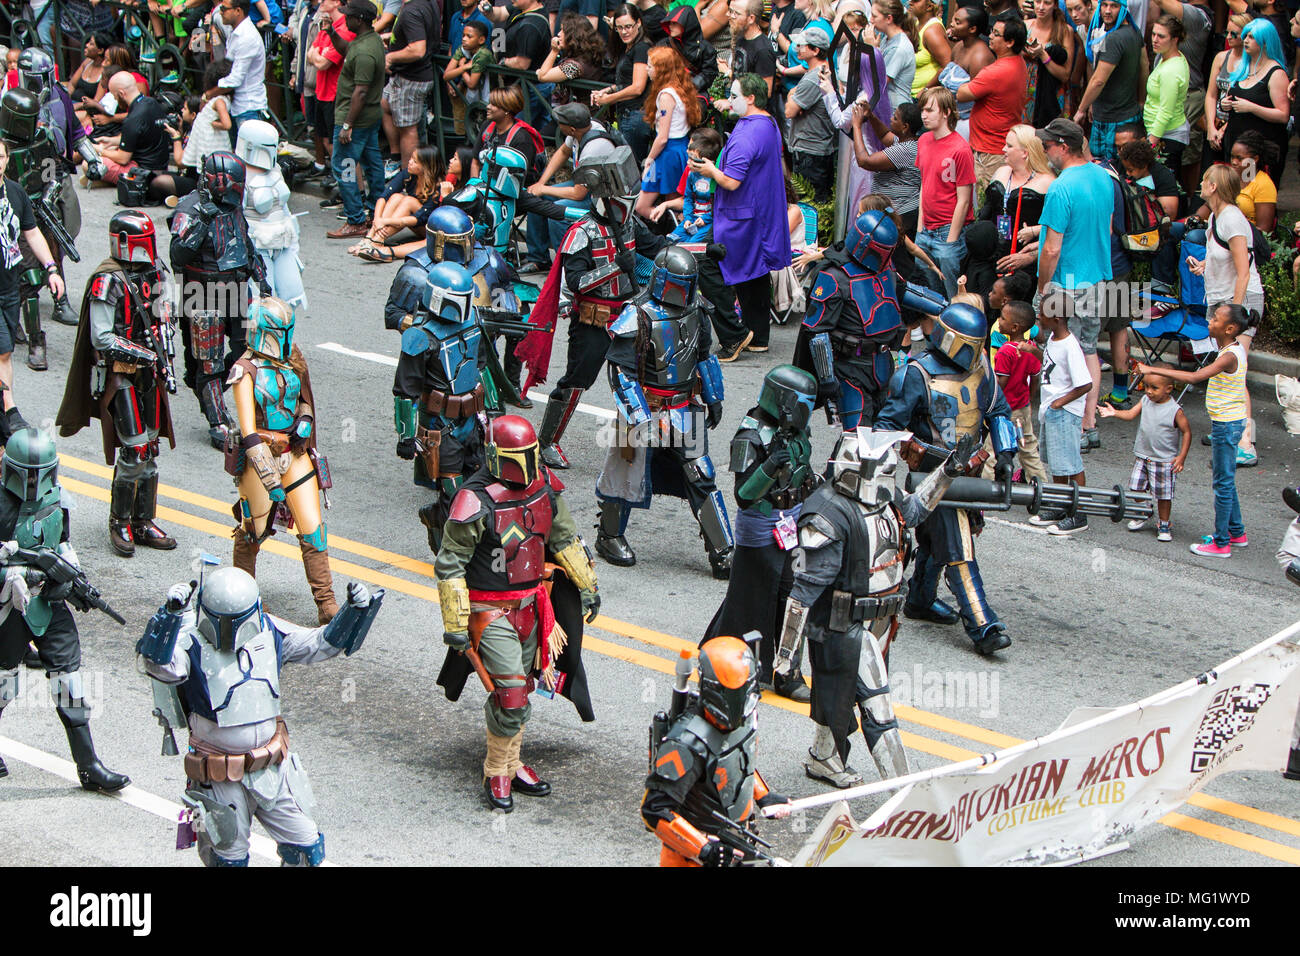 People dressed like Mandalorian Mercs from the Star Wars movies, walk in the annual Dragon Con Parade on September 3, 2016 in Atlanta, GA. - Stock Image